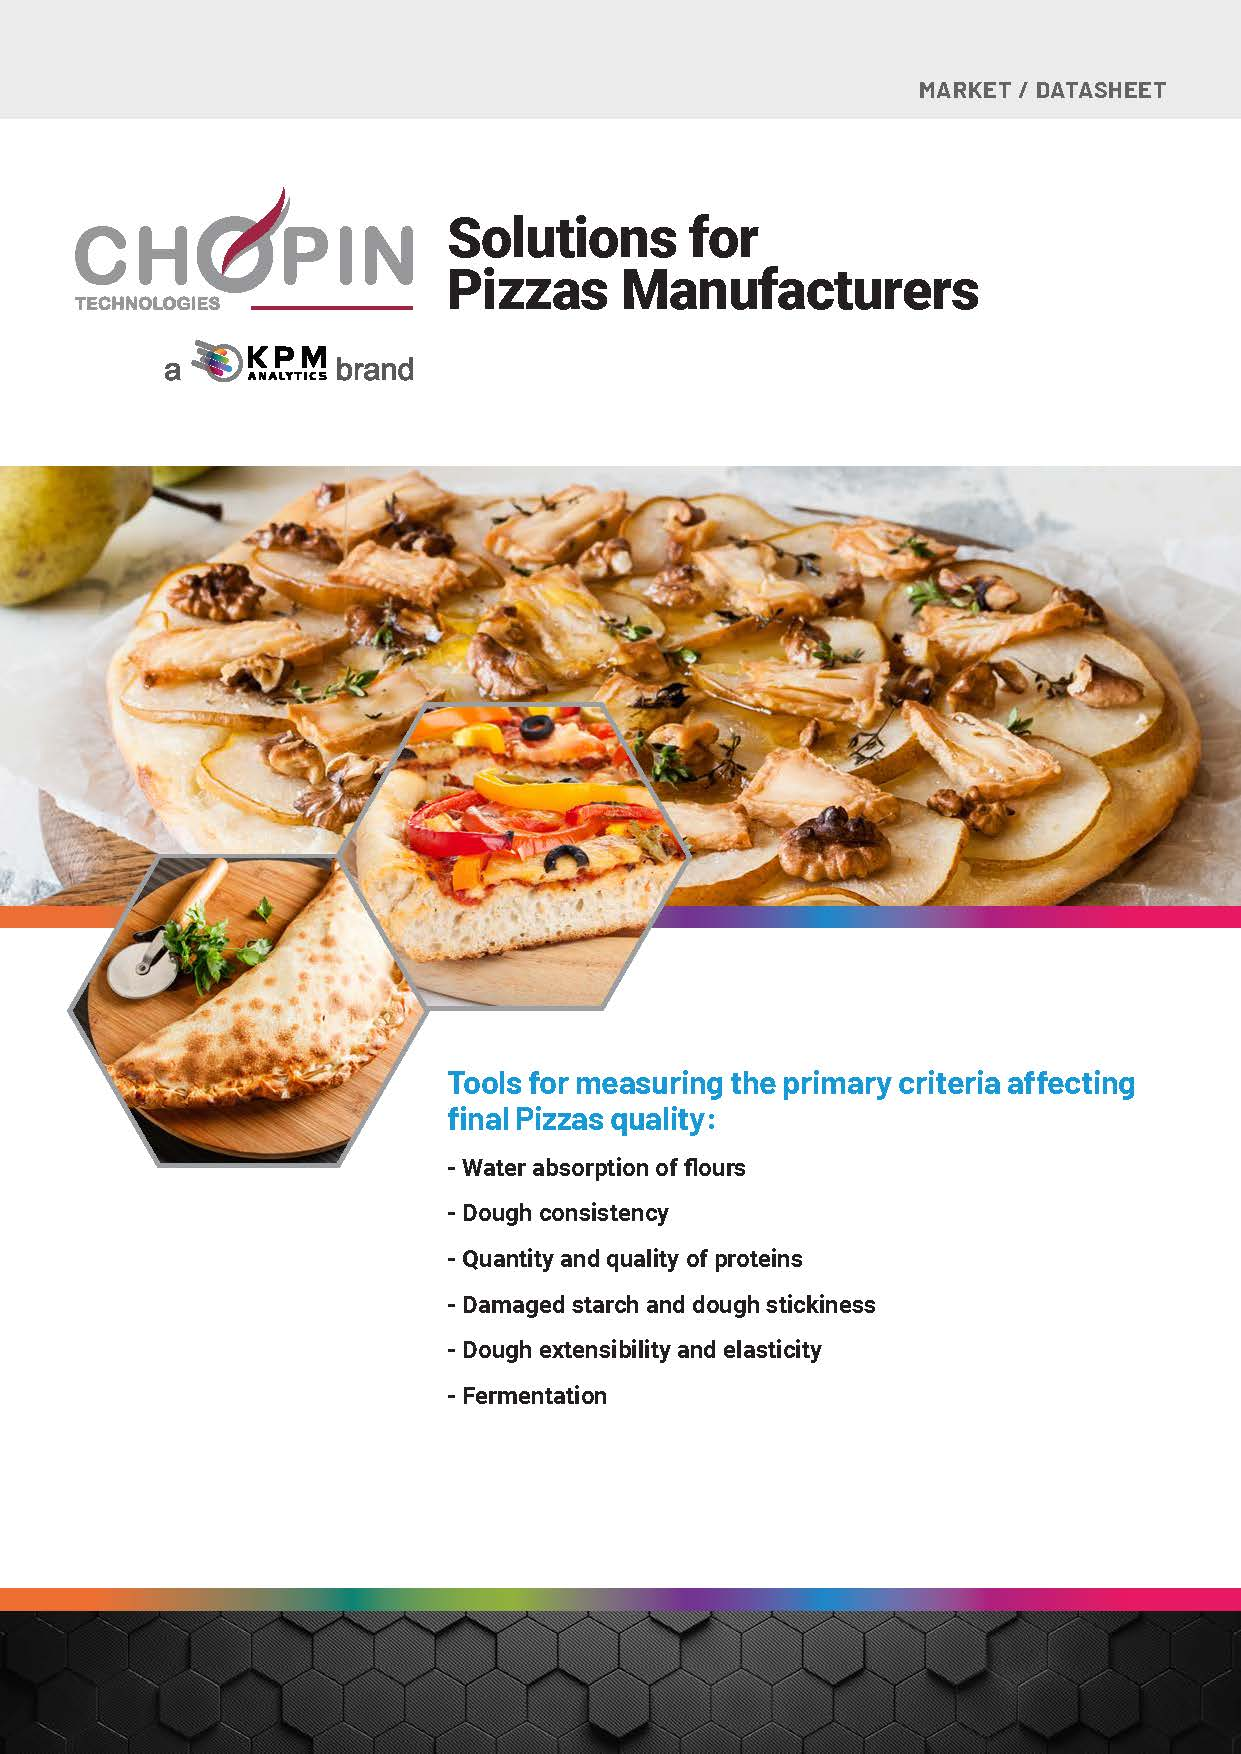 Solutions for Pizza Manufacturers